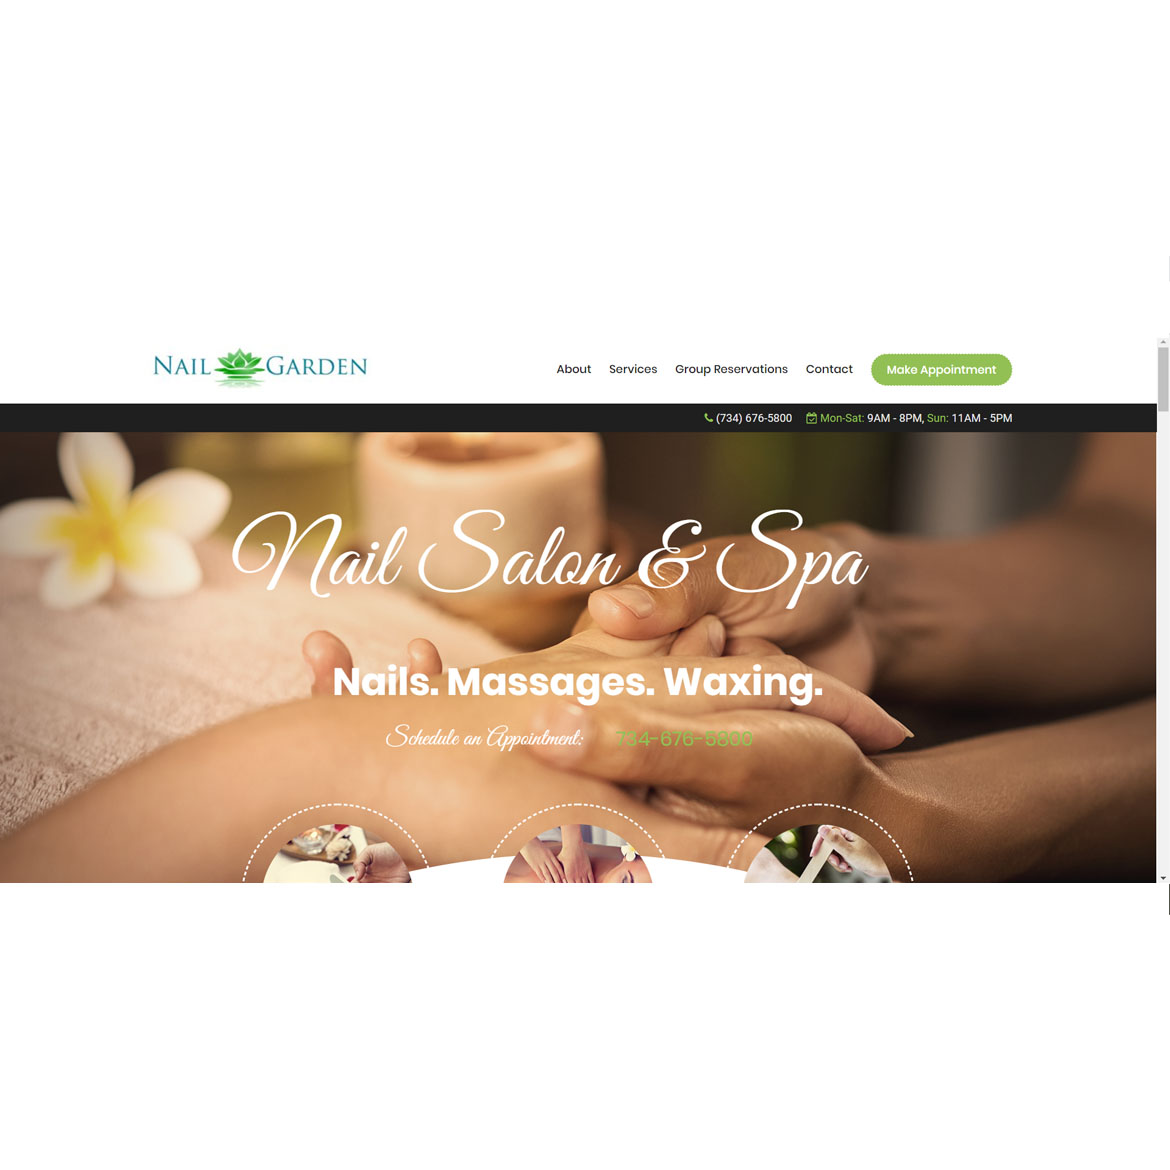 nailgarden website